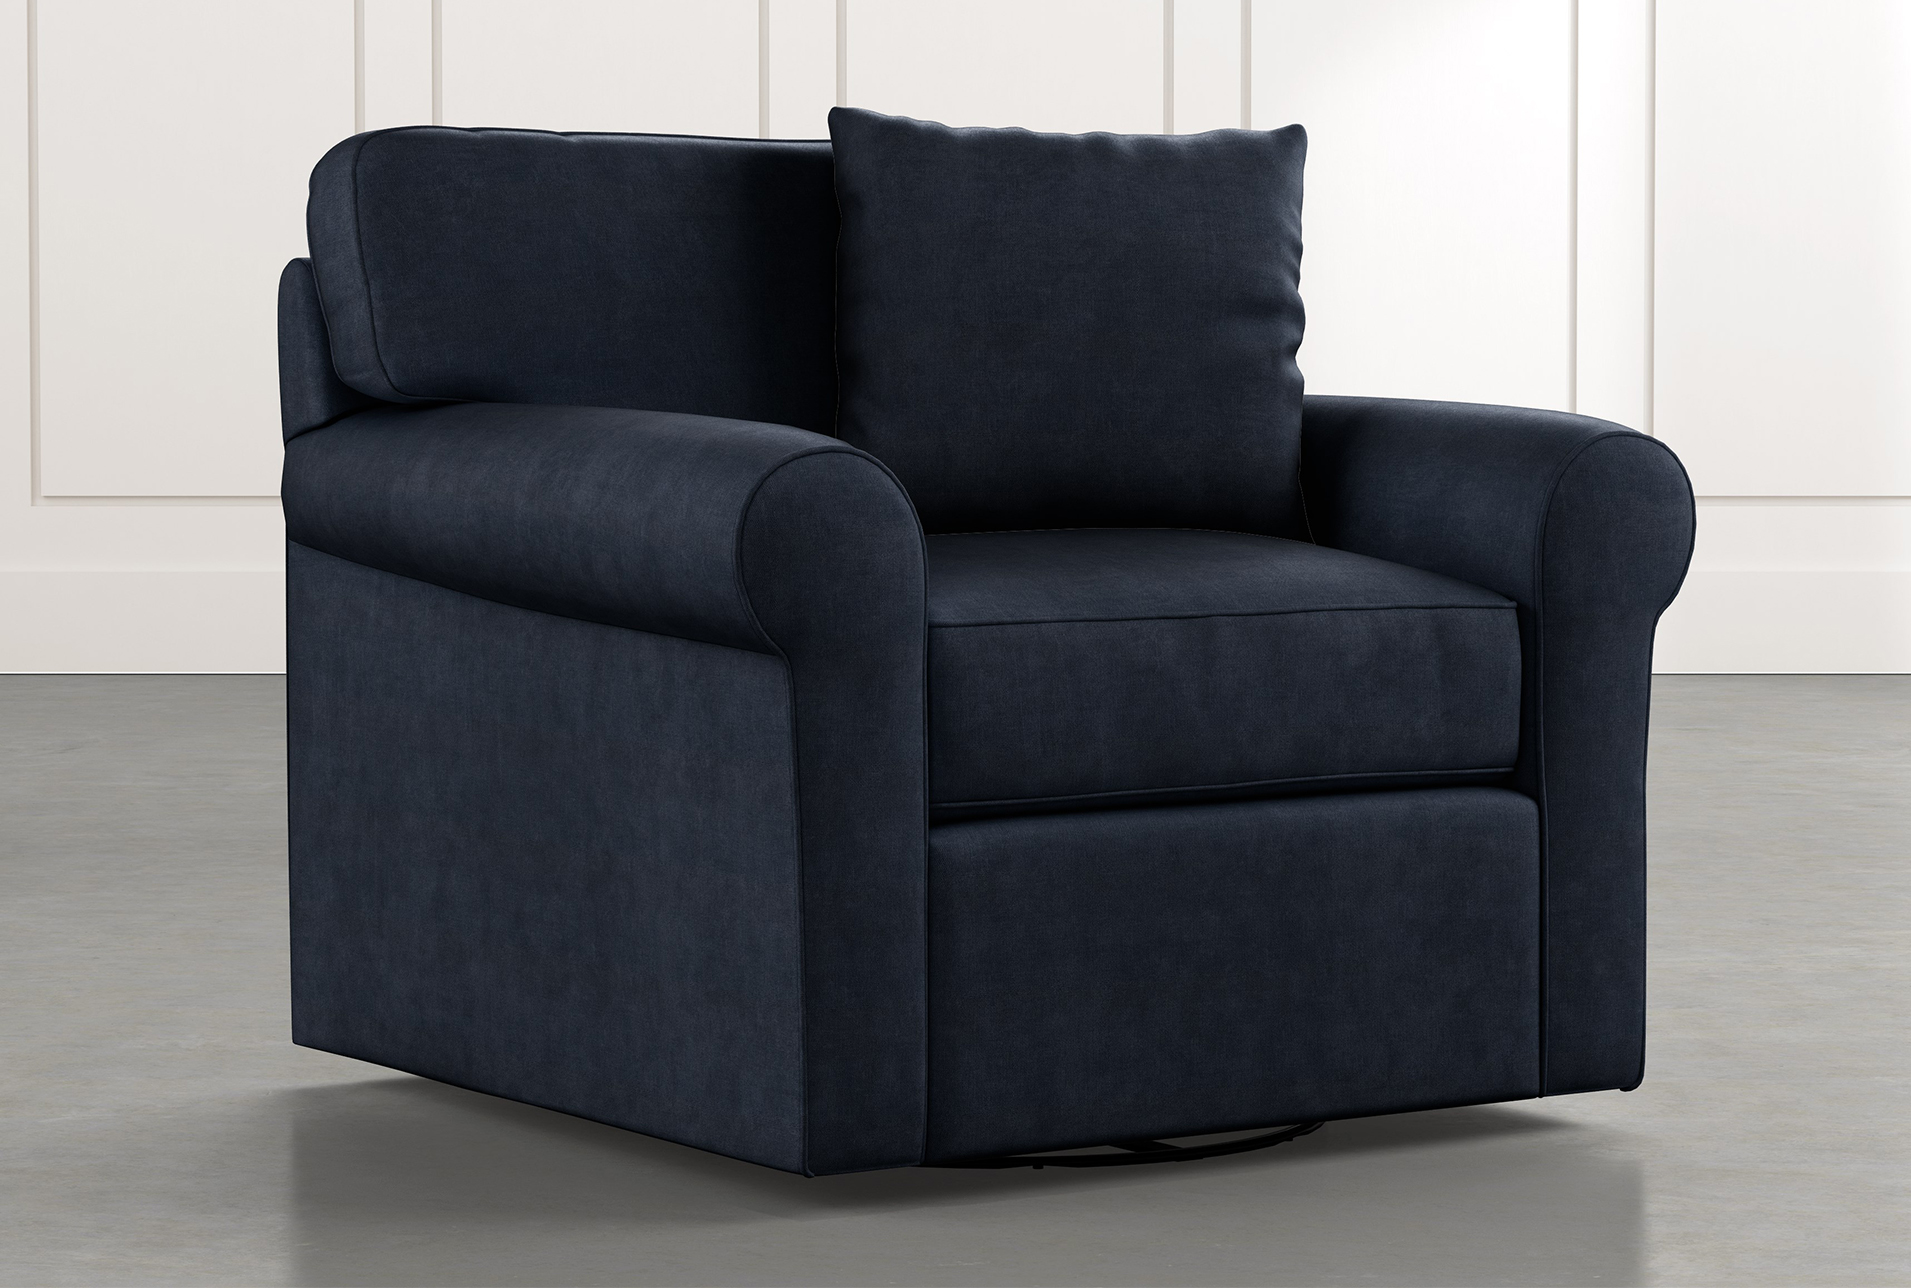 Charmant Elm II Navy Blue Swivel Arm Chair (Qty: 1) Has Been Successfully Added To  Your Cart.